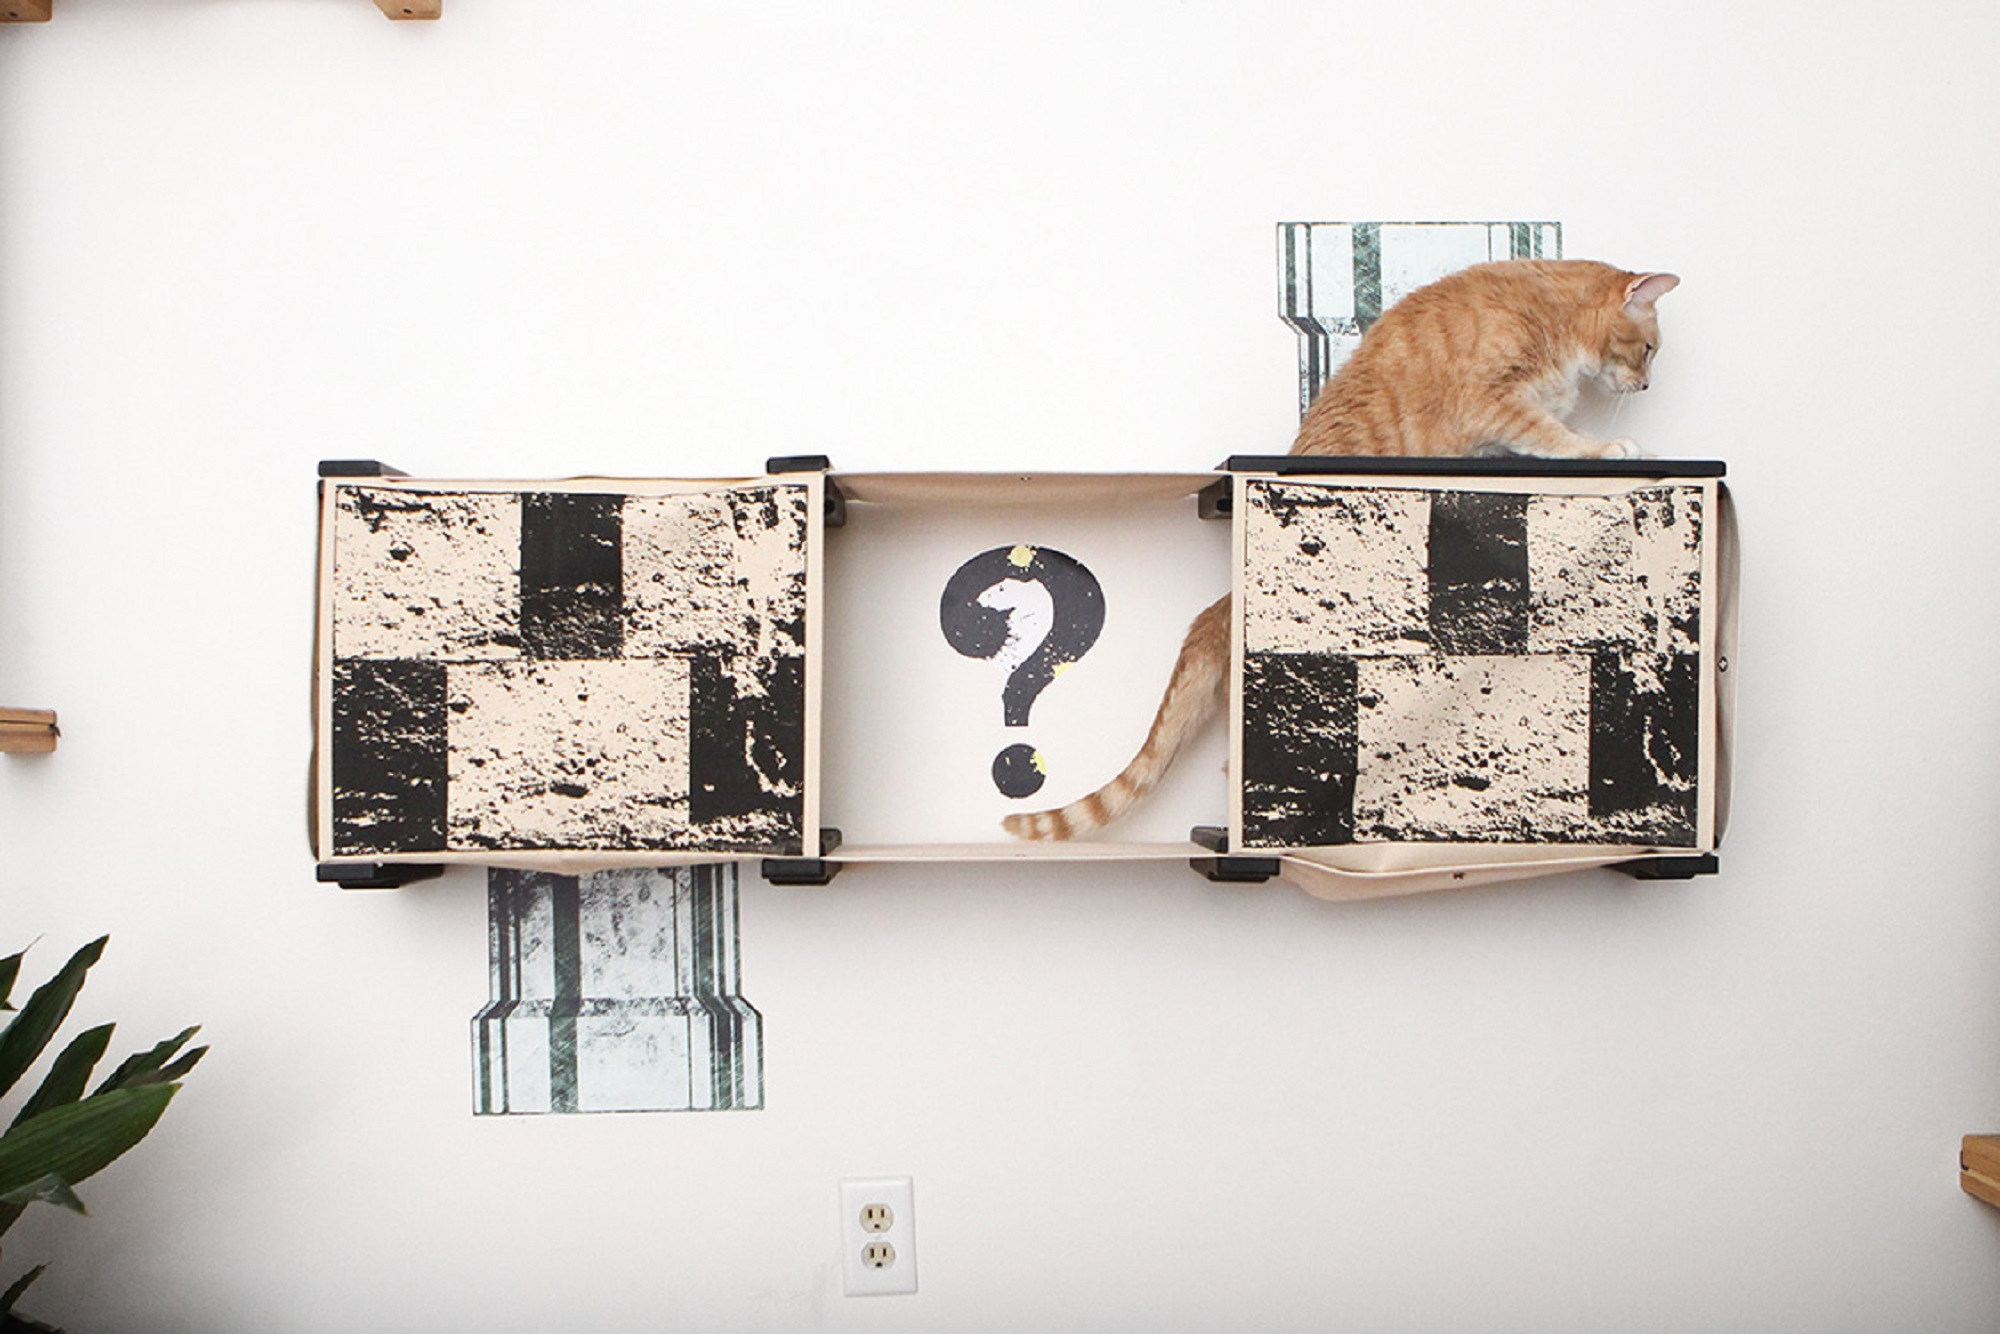 orange cat jumping from hole in escape hatch to the top of Mario Complex